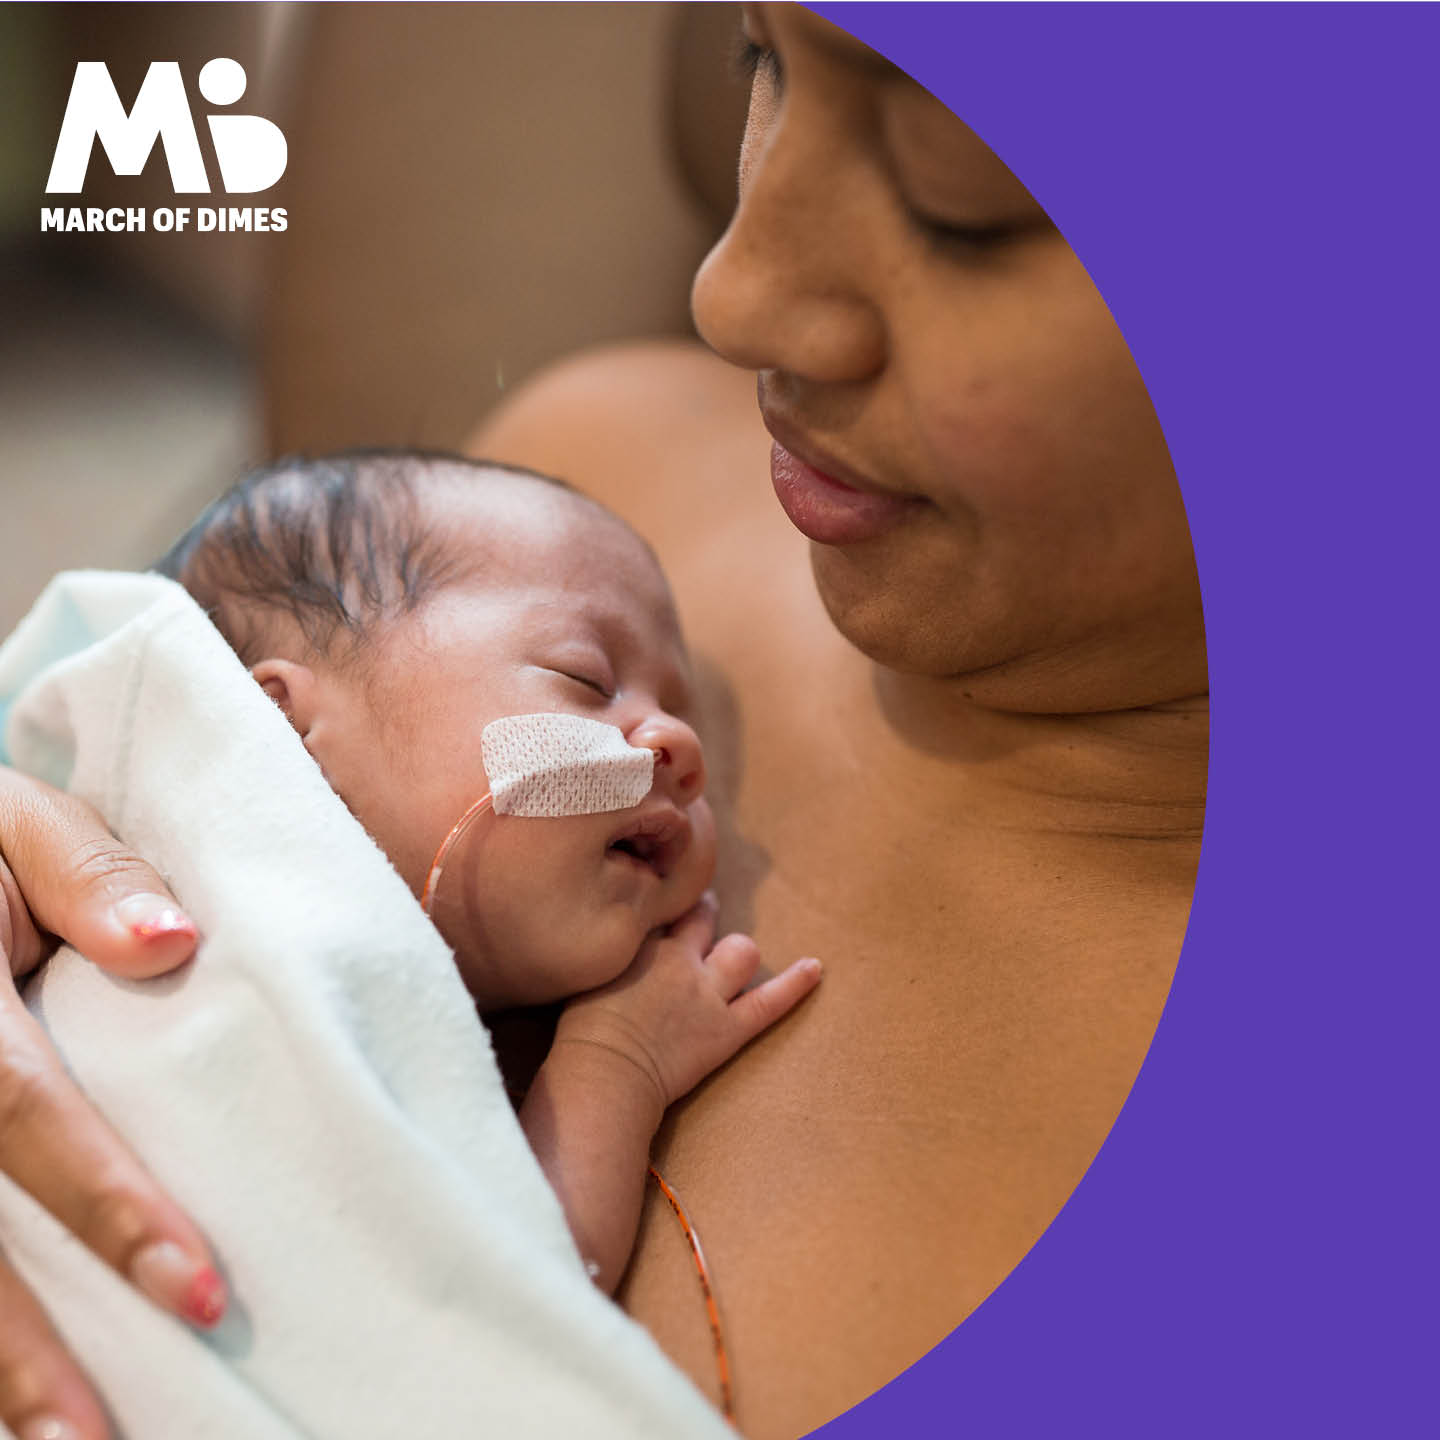 It's Prematurity Awareness Month – Come chat with us!